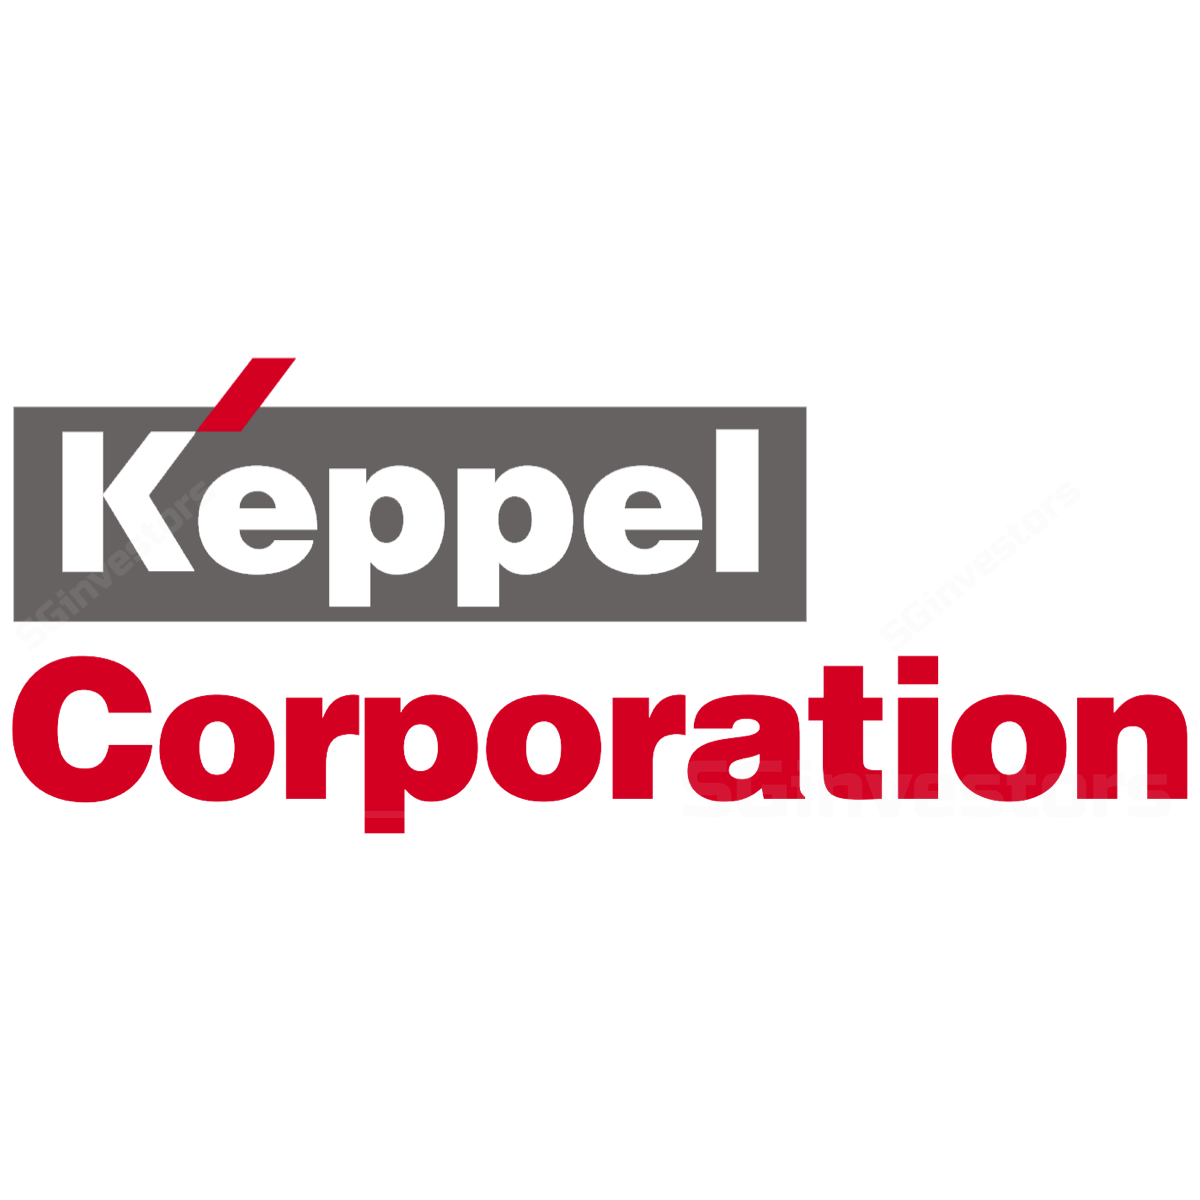 Keppel Corp - RHB Invest 2017-06-30: New Offshore & Marine Contracts